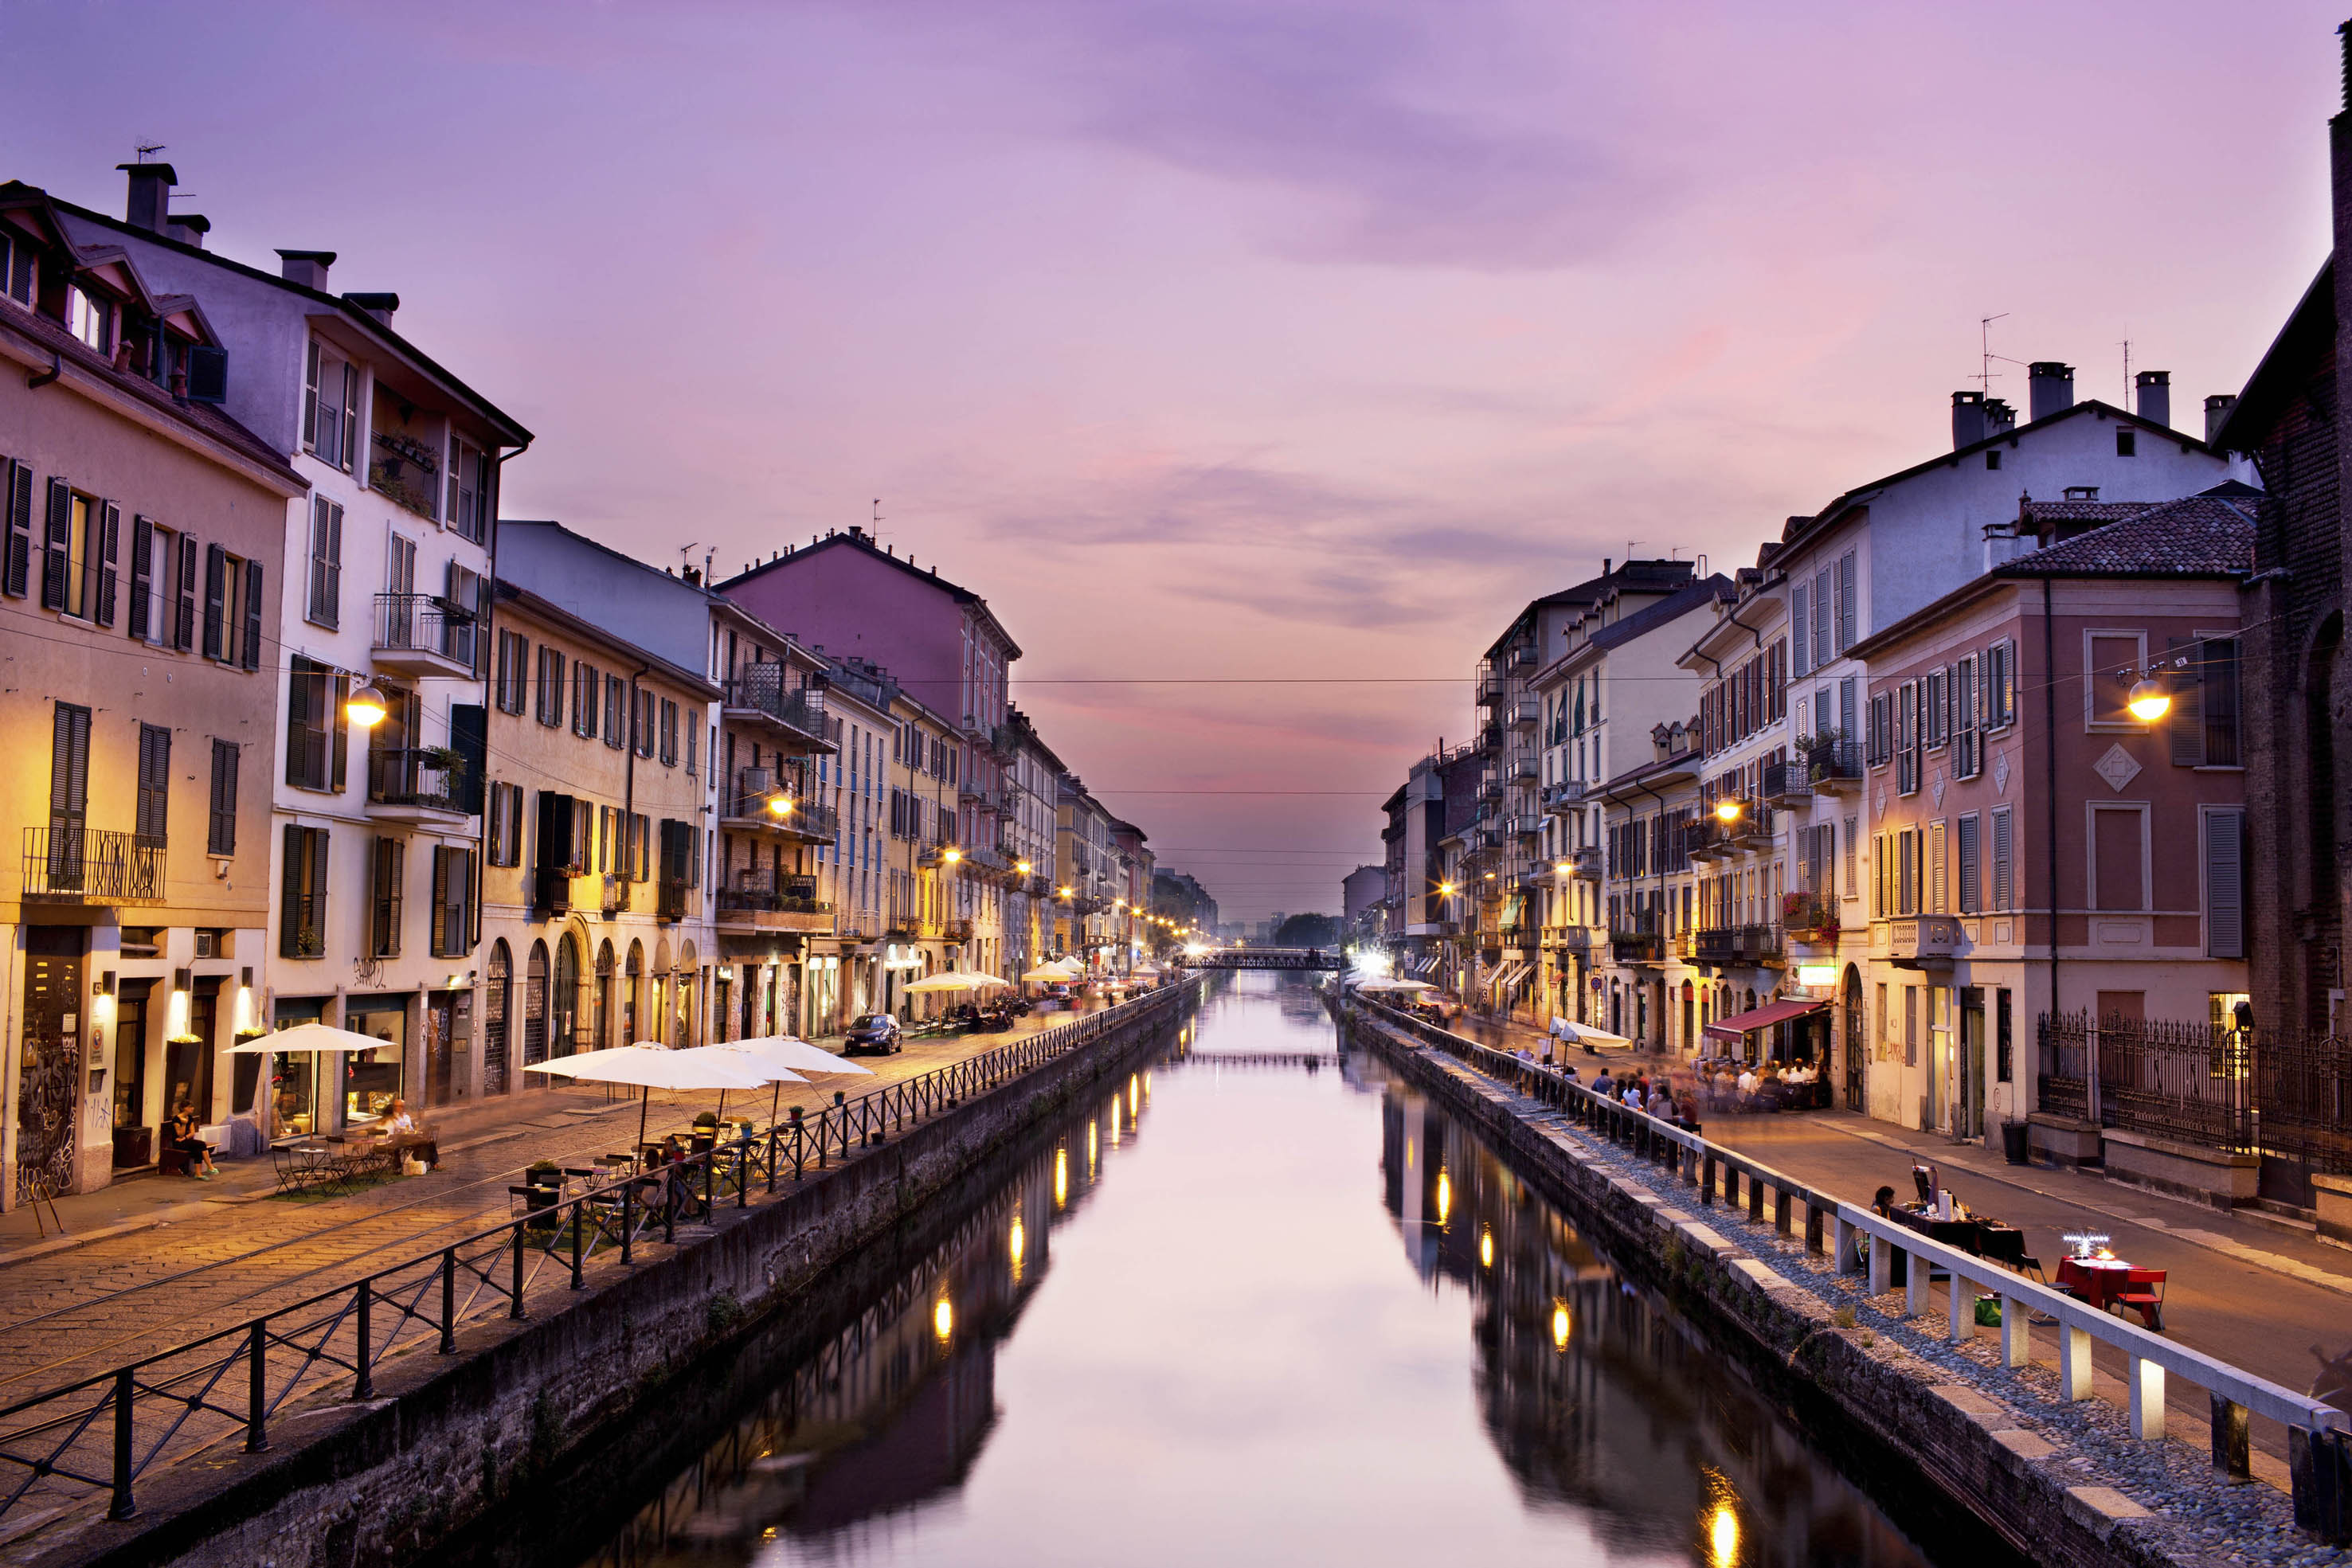 ITALY MILAN Milan, Naviglio Grande at dusk The Naviglio Grande is a canal in Lombardy, northern Italy, joining the Ticino river near Tornavento to the Porta Ticinese dock, also known as the Darsena, in Milan